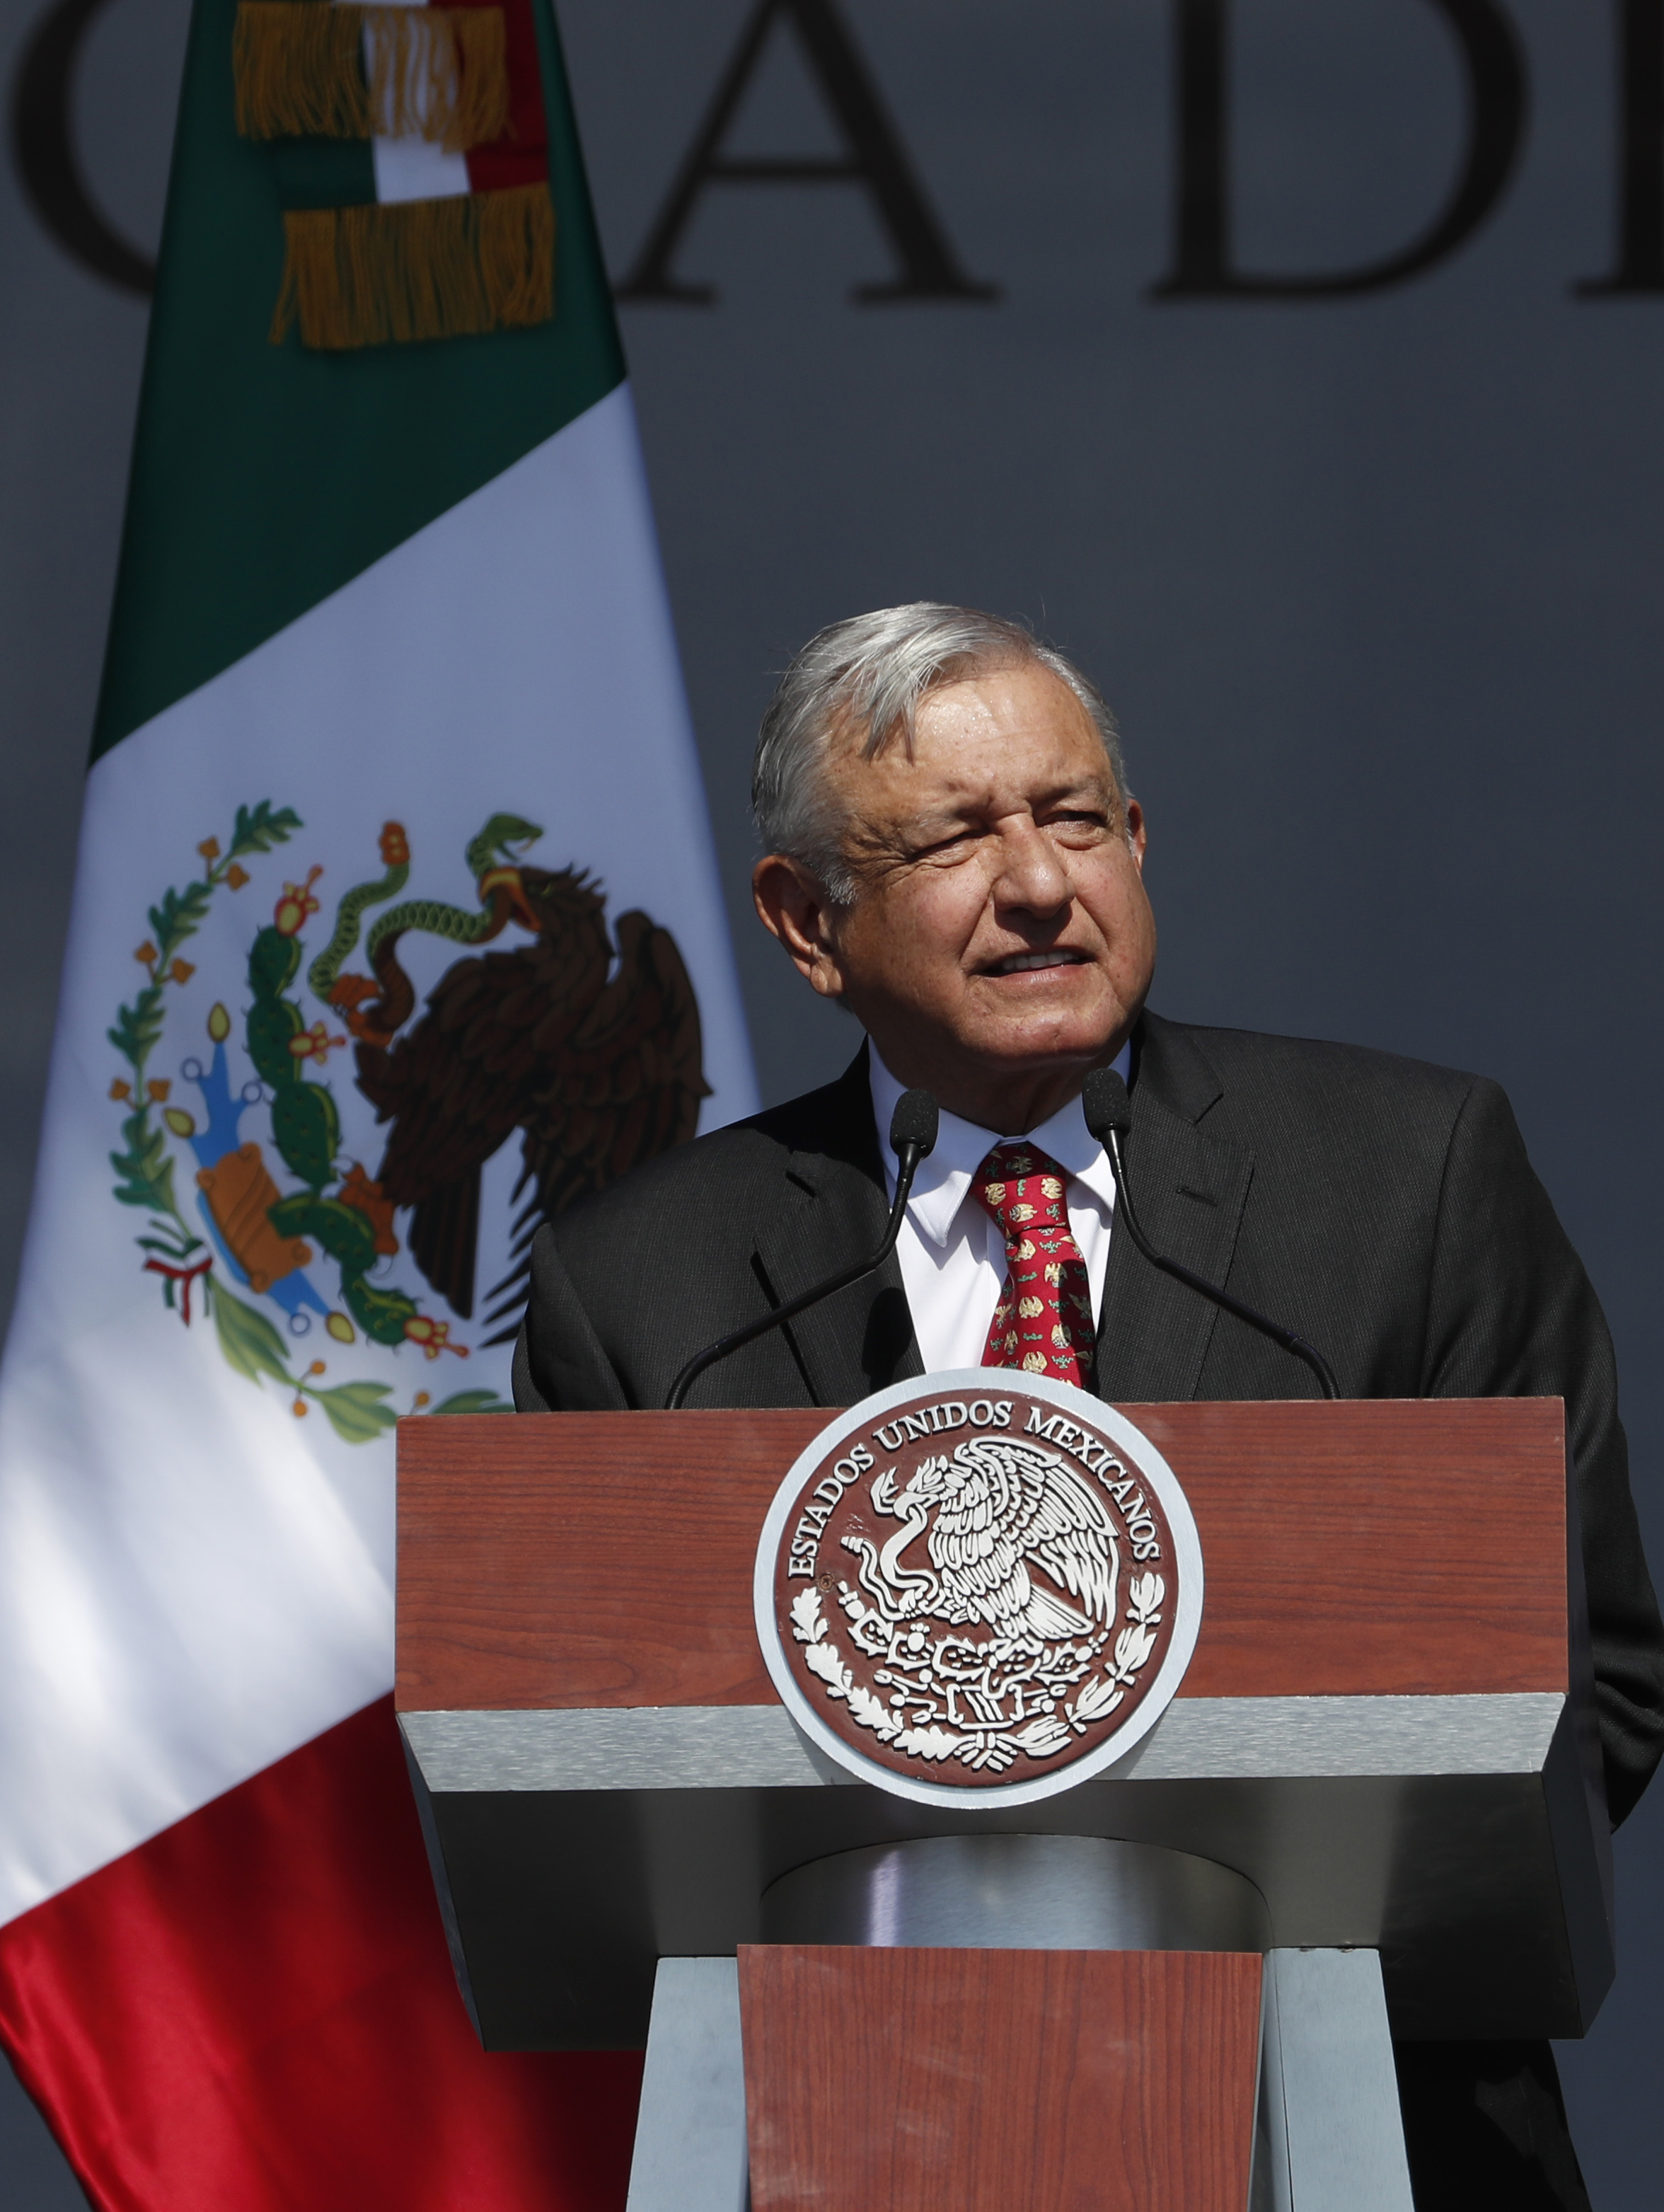 Mexico president marks 1 year in office with party, protests